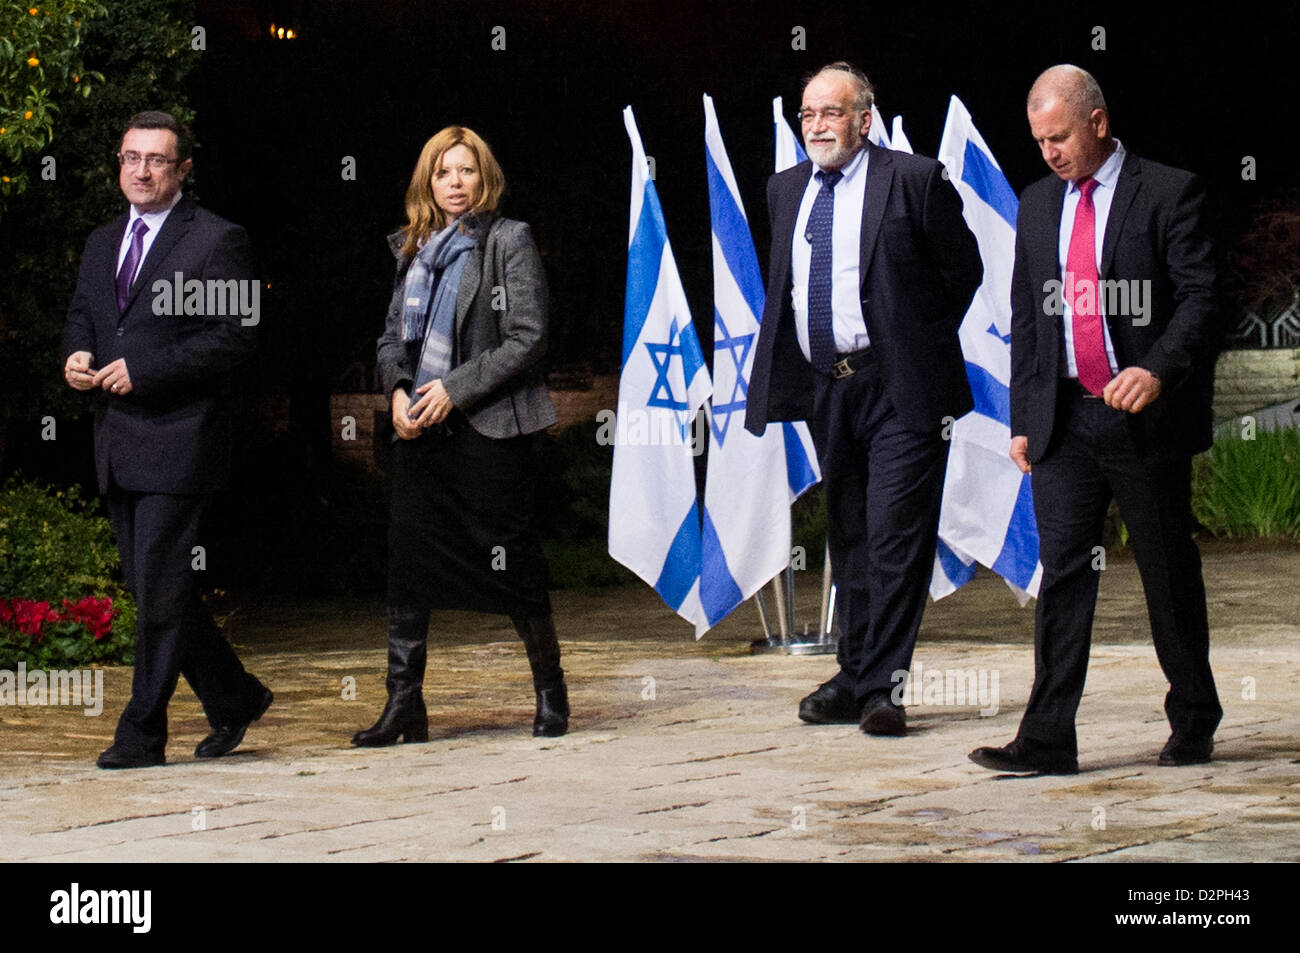 Incumbent Member of outgoing Knesset, David Rotem (2nd right), representing Likud-Beitenu, is escorted into the - Stock Image